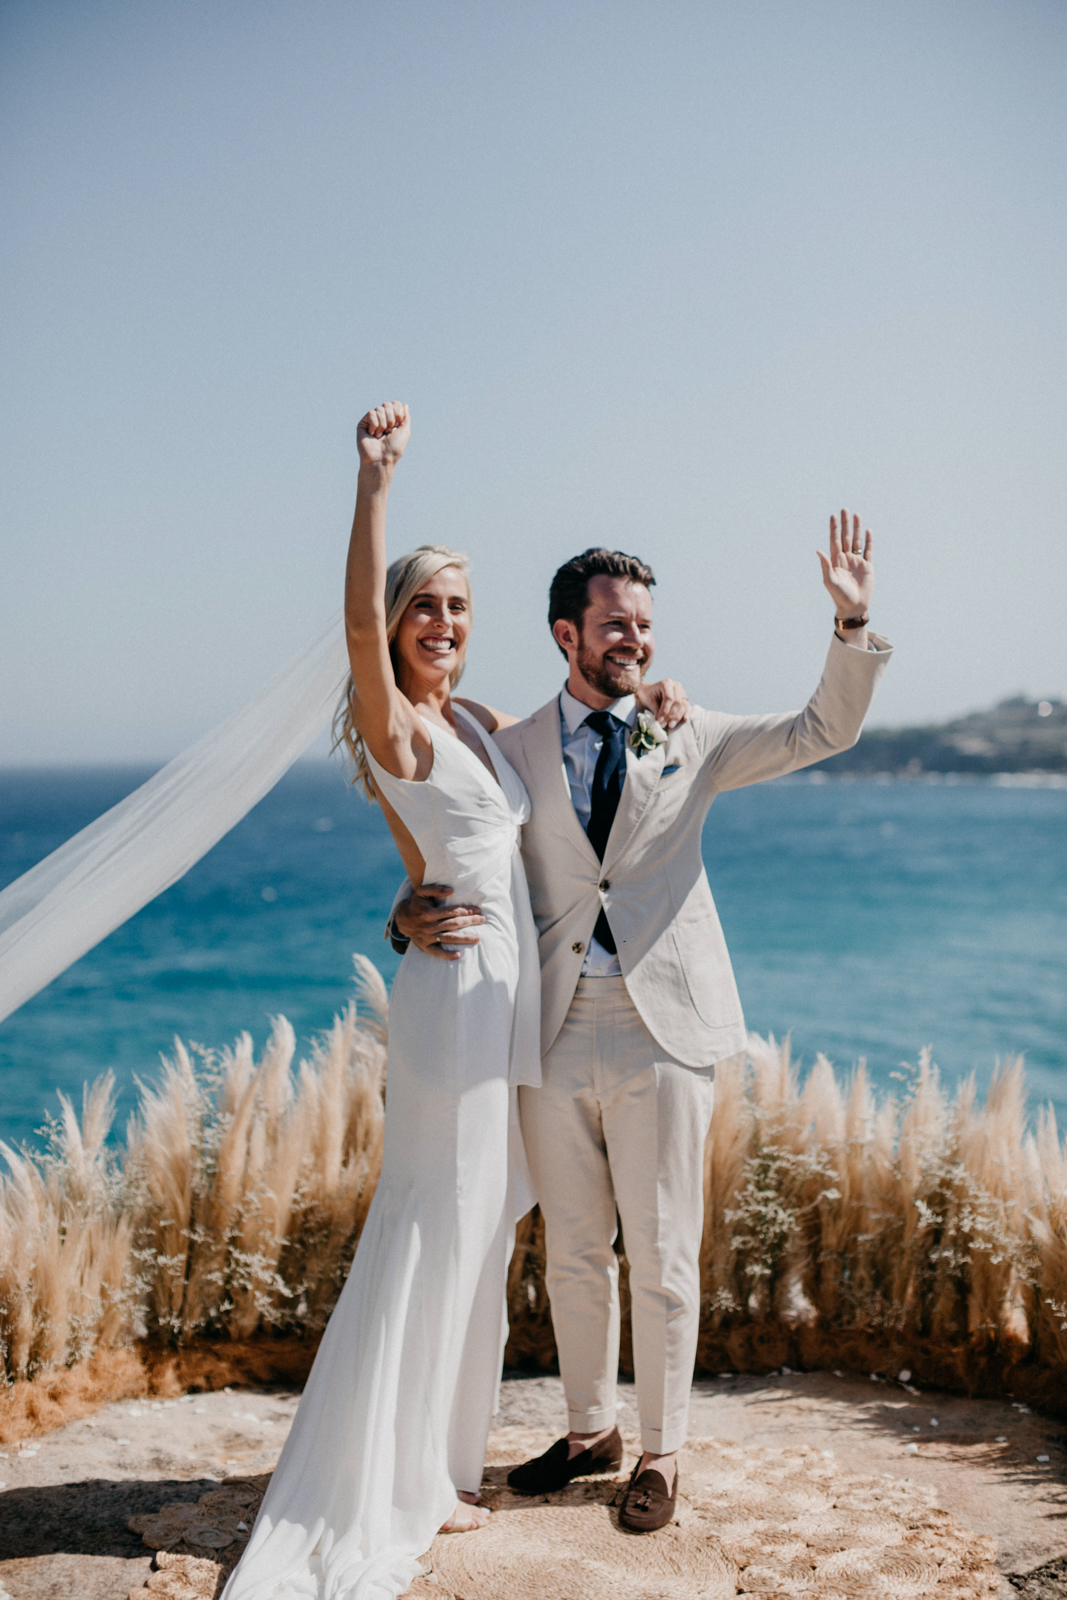 Real Wedding: Juliana & Luke - Photography by Mitch Pohl Photography ...